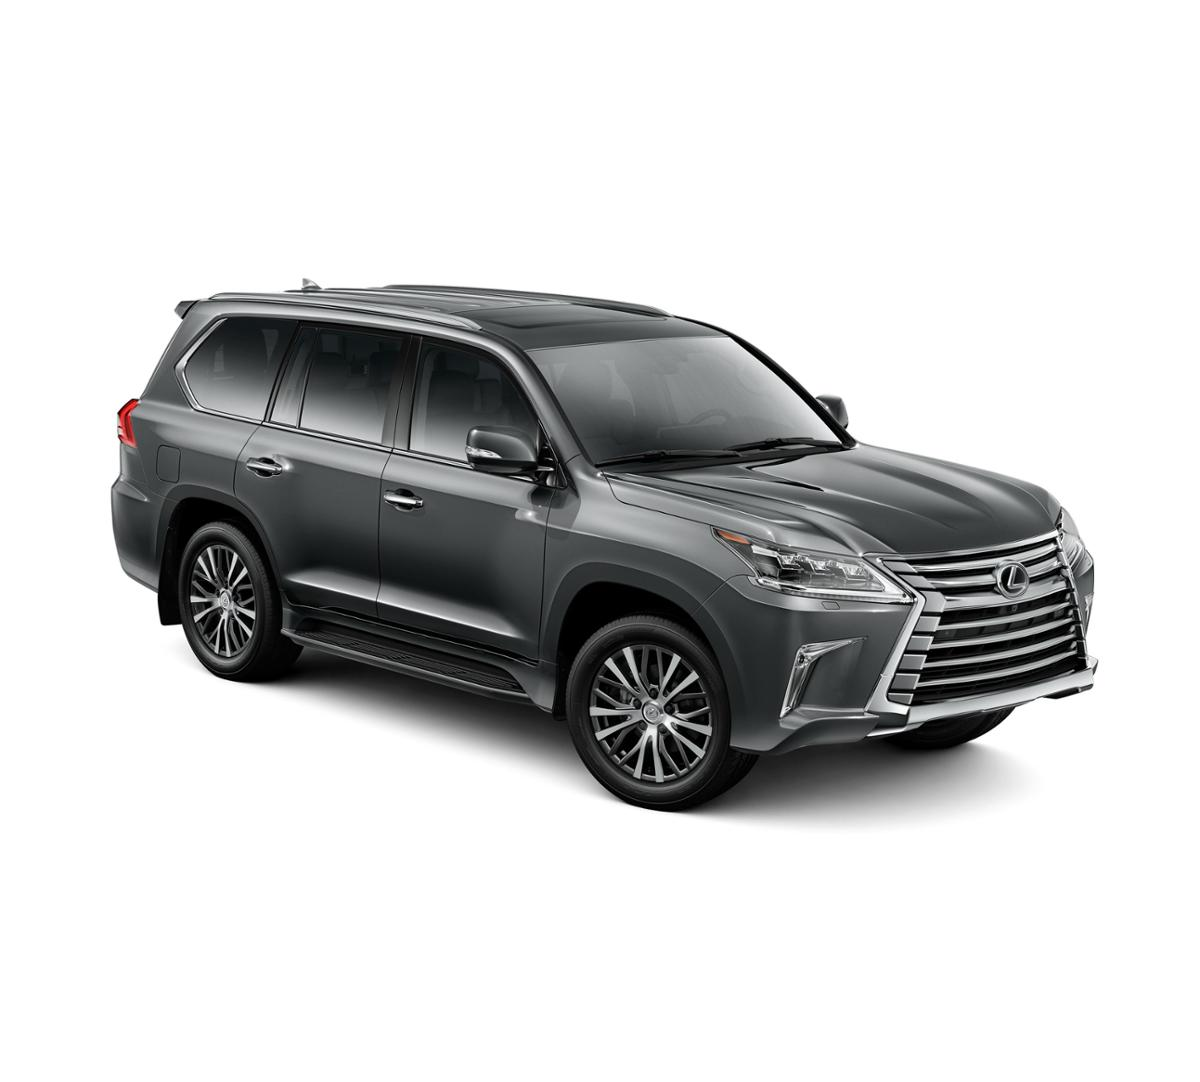 2017 Lexus LX 570 Vehicle Photo in Modesto, CA 95356